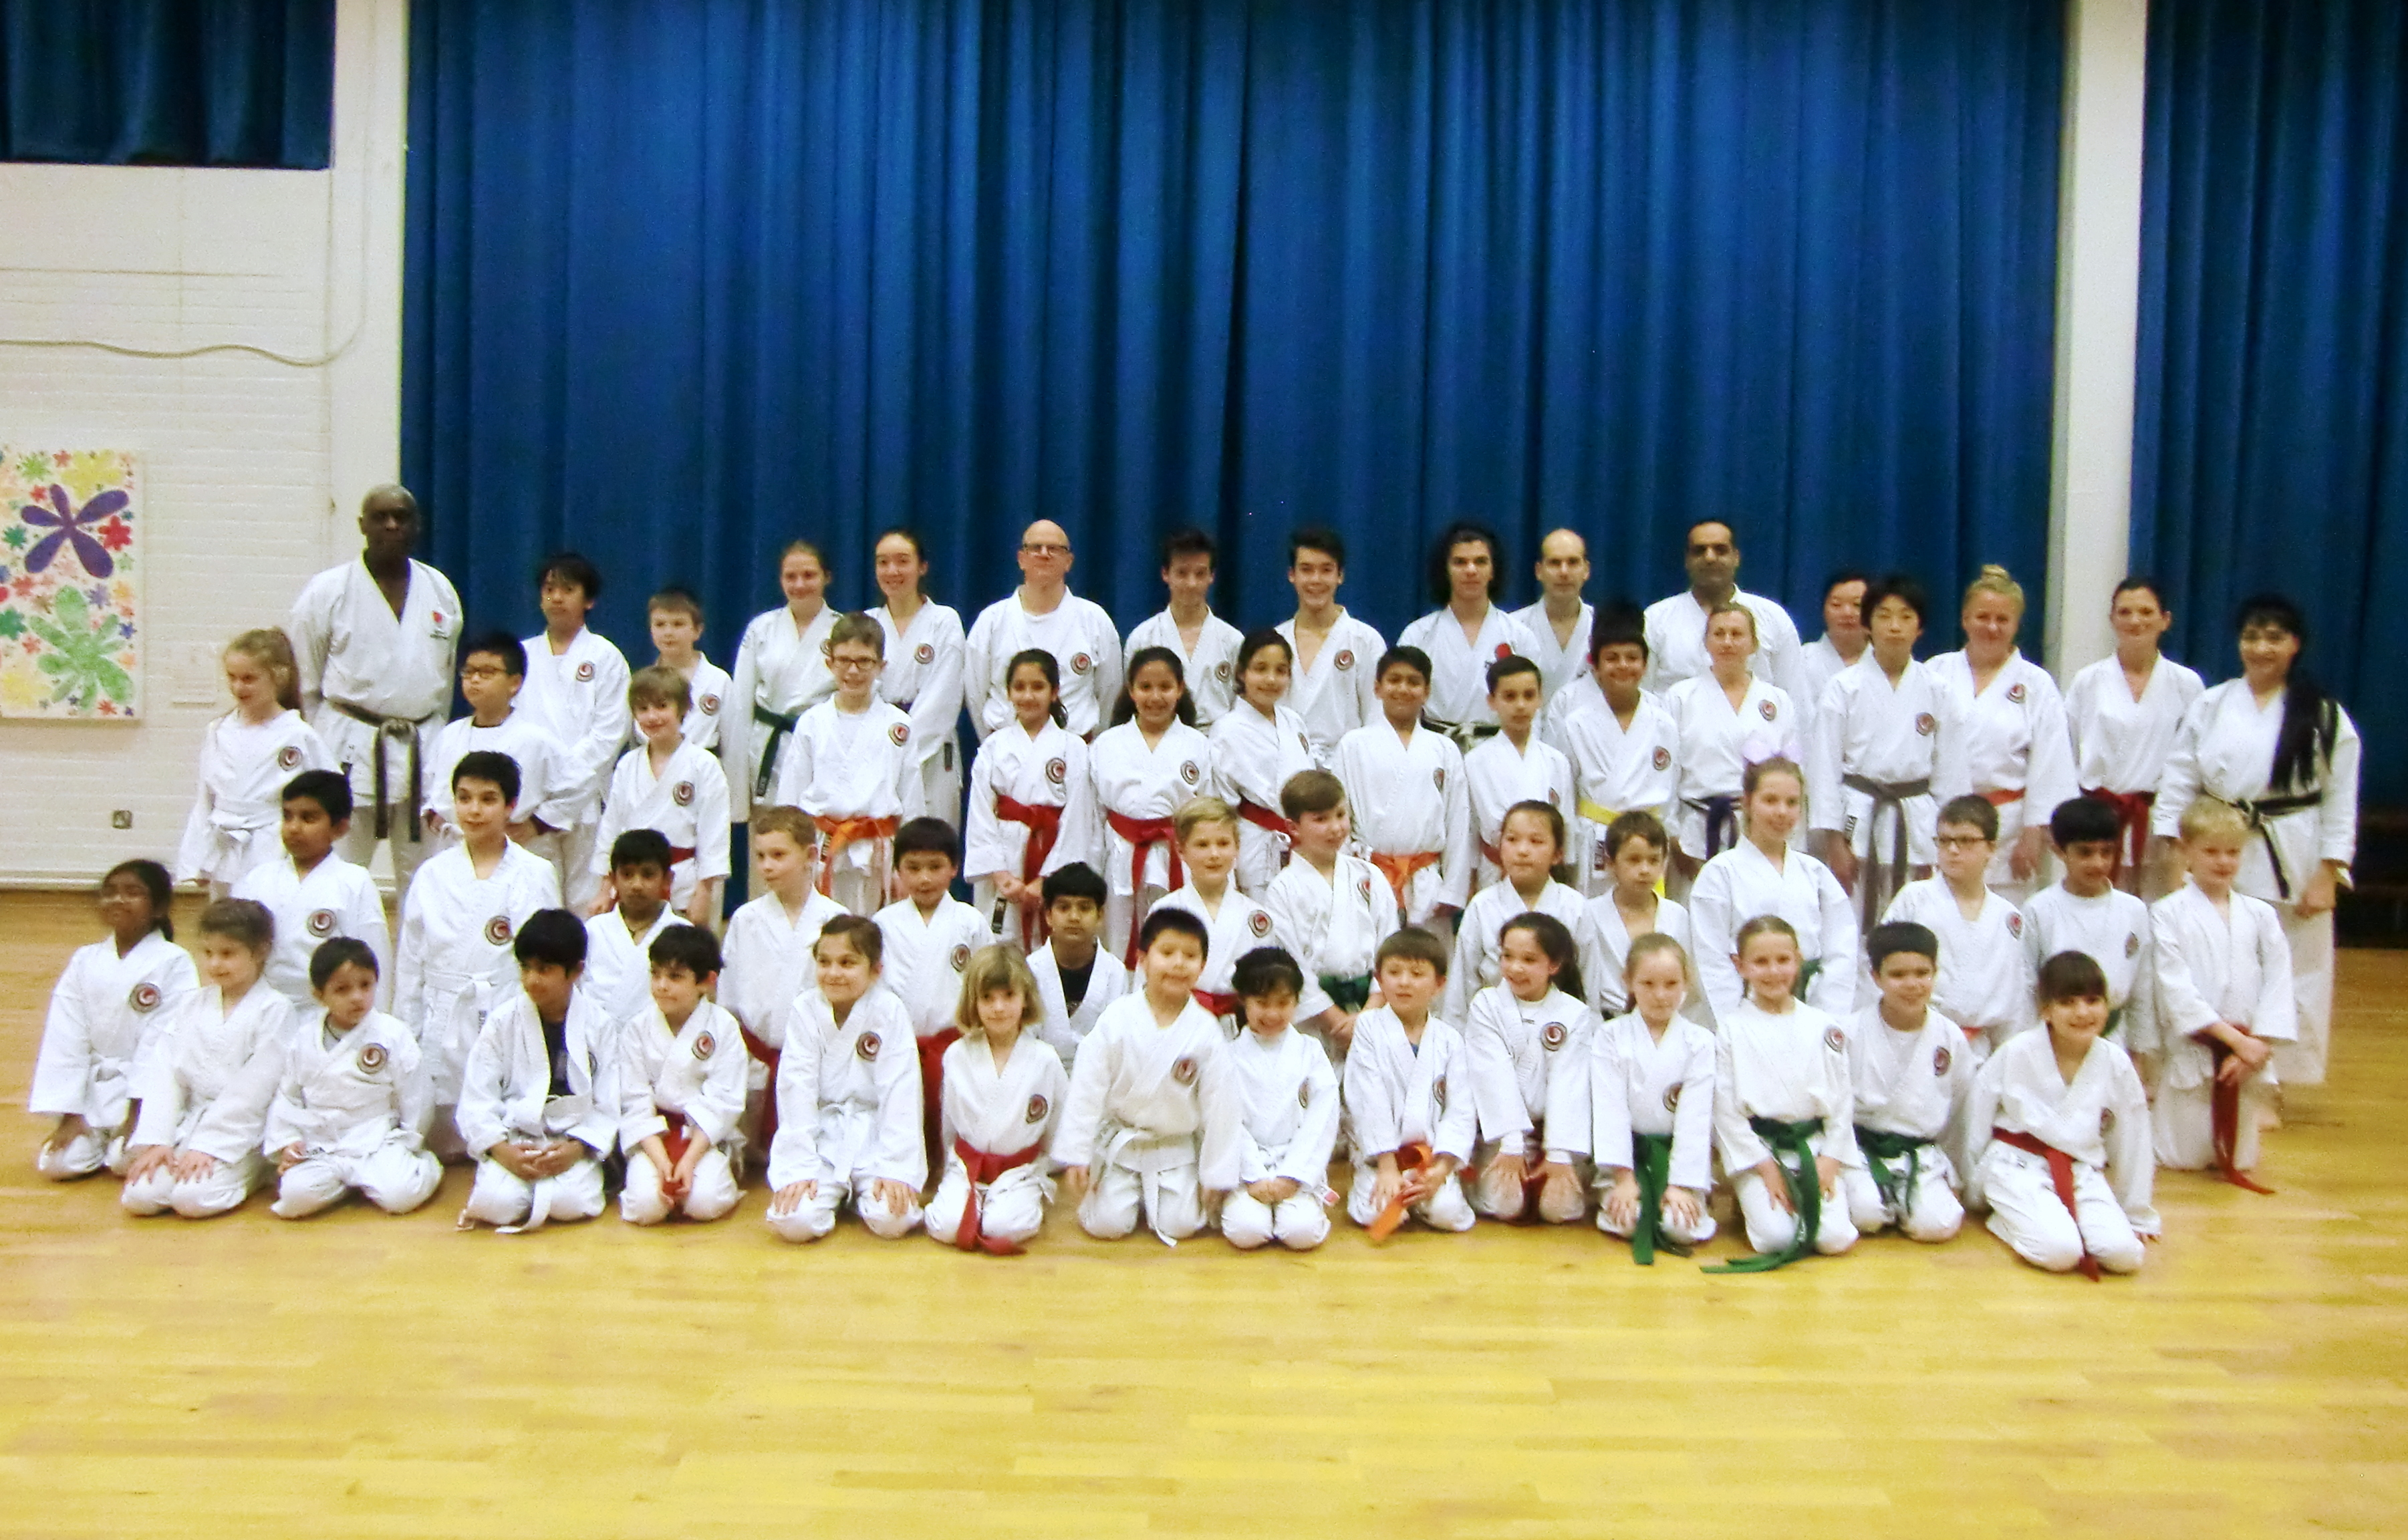 (Click to Enlarge) Bromley & South East London JKA Karate Club ends the 2016 with another very successful grading! A Brilliant Training Session with the highly qualified examiner Sensei Roy Tomlin (MBE) (6th Dan) , which was attended by more than 50  Members! Many Thanks Senei Roy ! Also Many Thanks to all those who attended as well as to all the members for supporting the club A Special Big Thank You to Patrick Pelter for all his help & hard work with the students through out the year! Well Done & Congratulations to Everyone! KEEP TRAINING!!